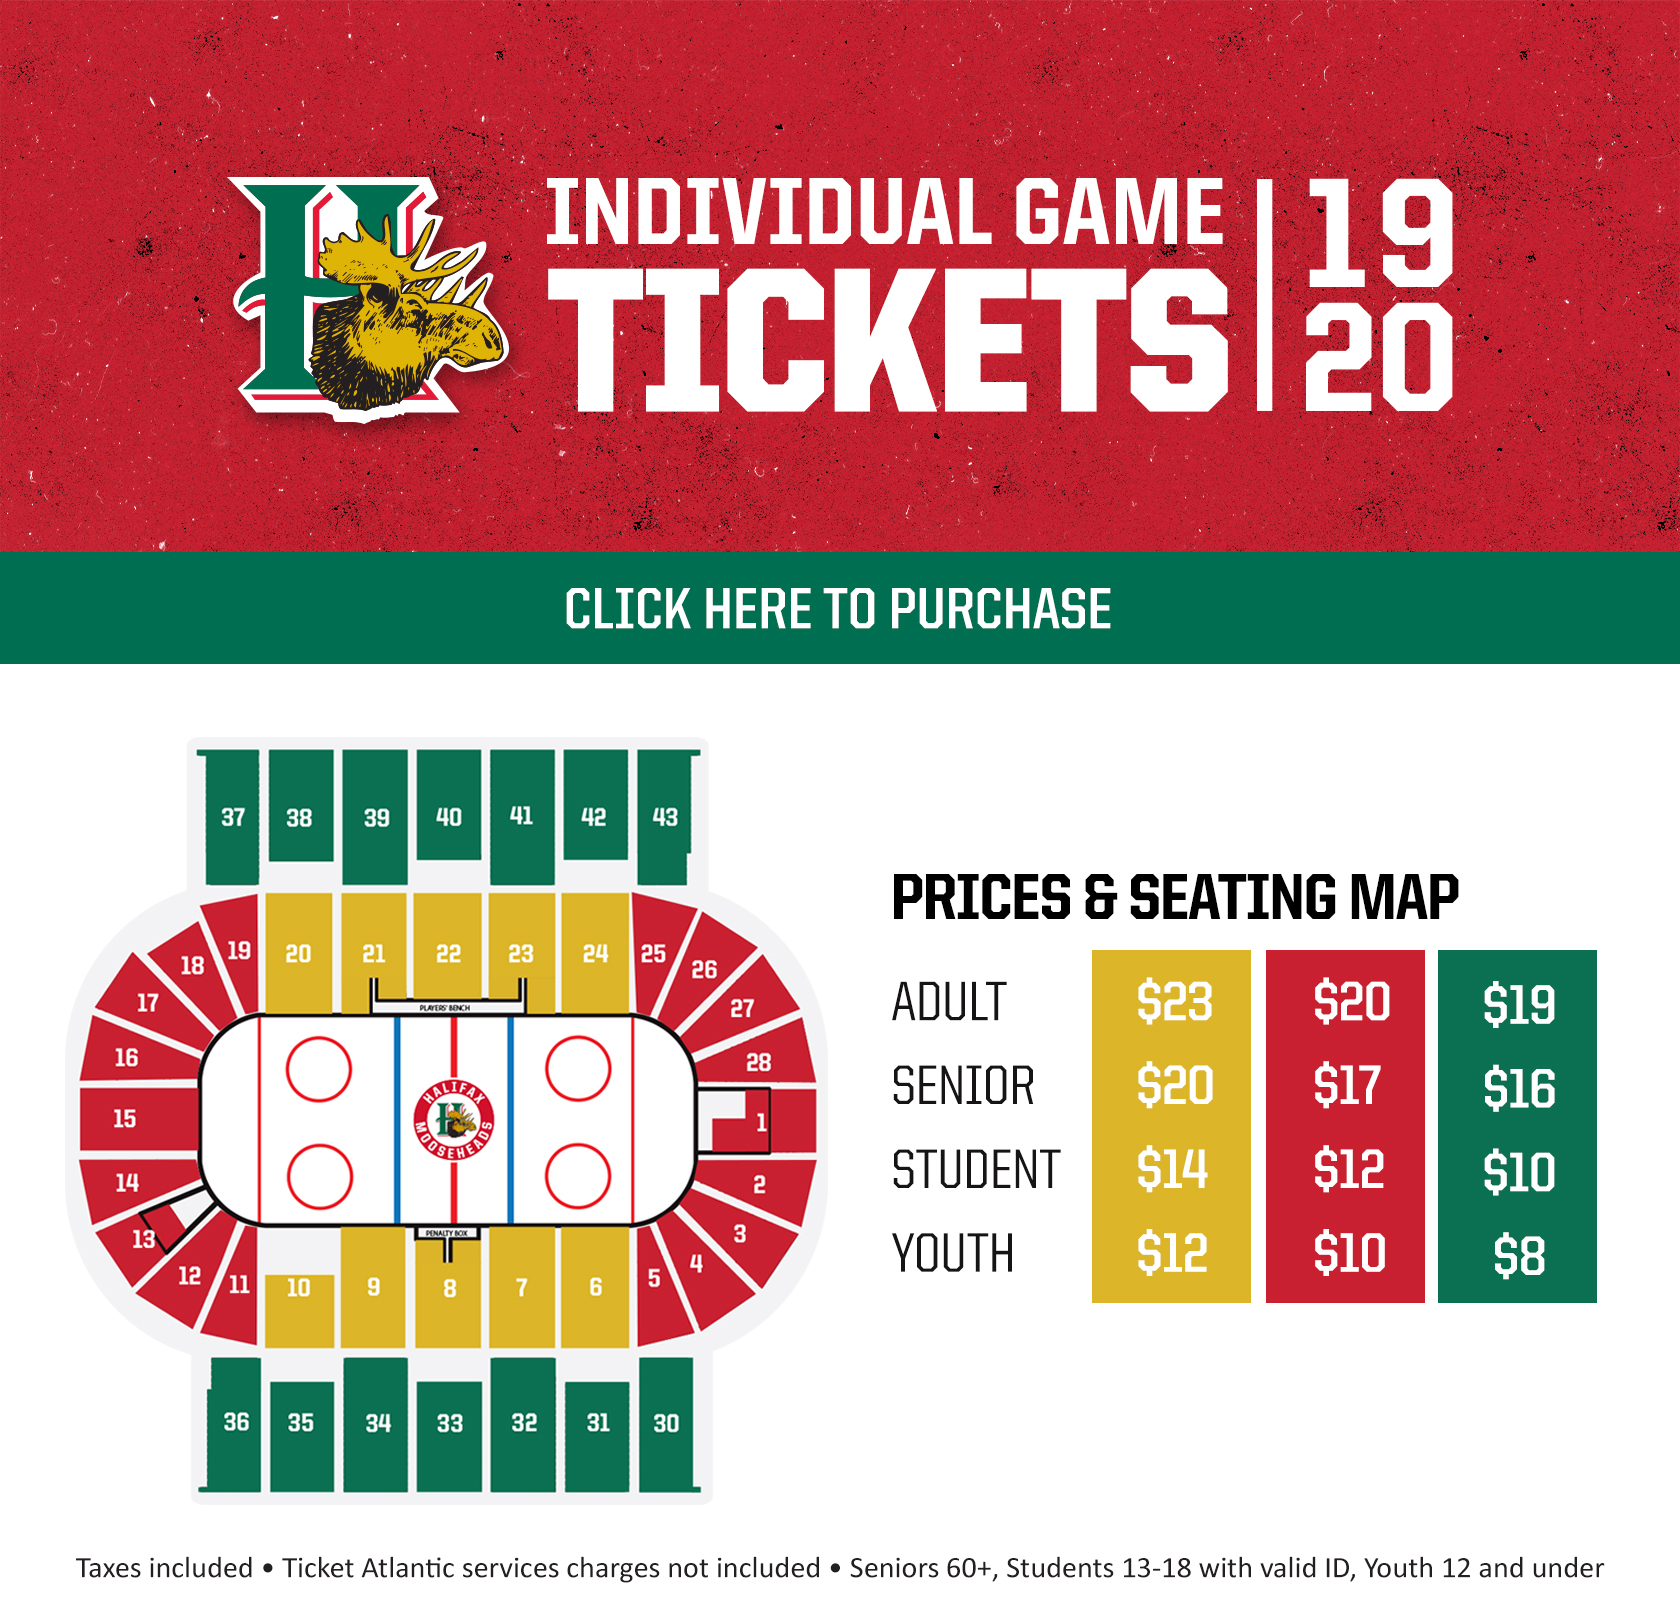 IndividualTickets-OnSale